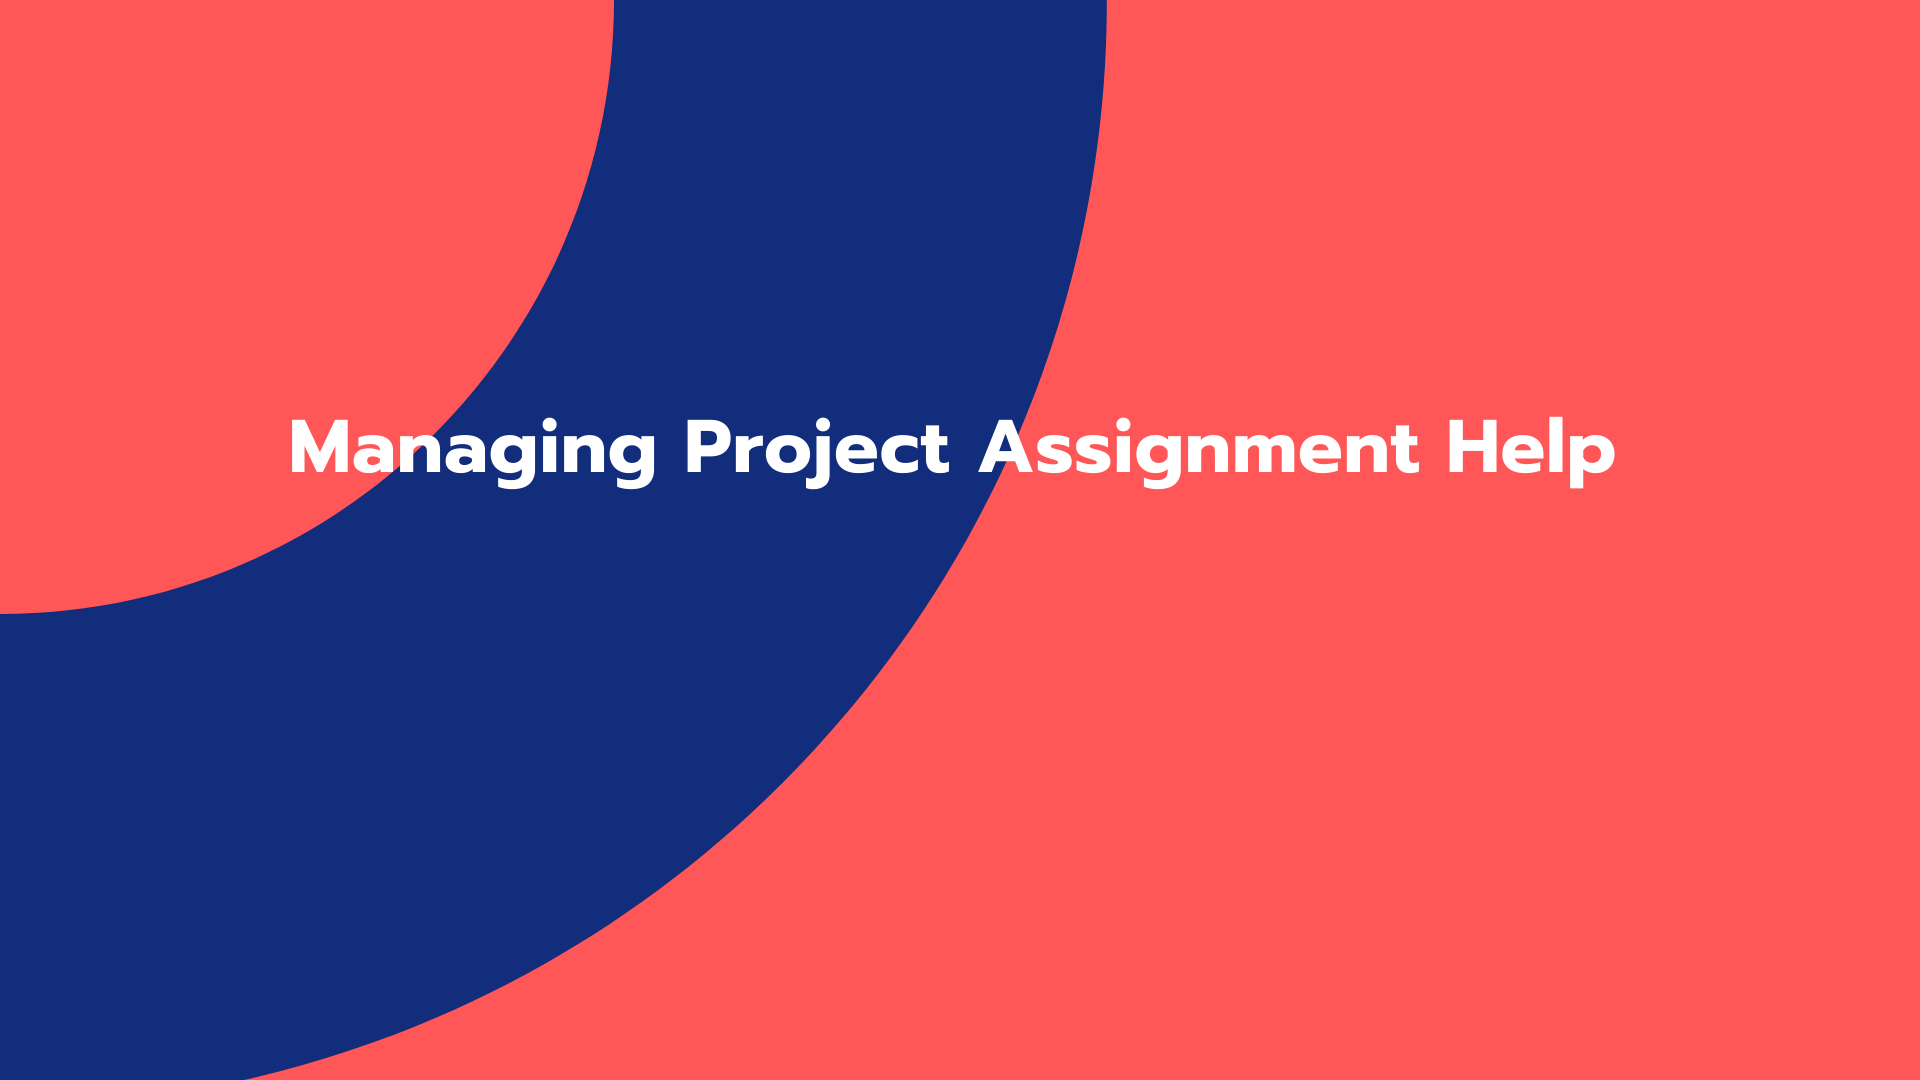 Managing Project Assignment Help